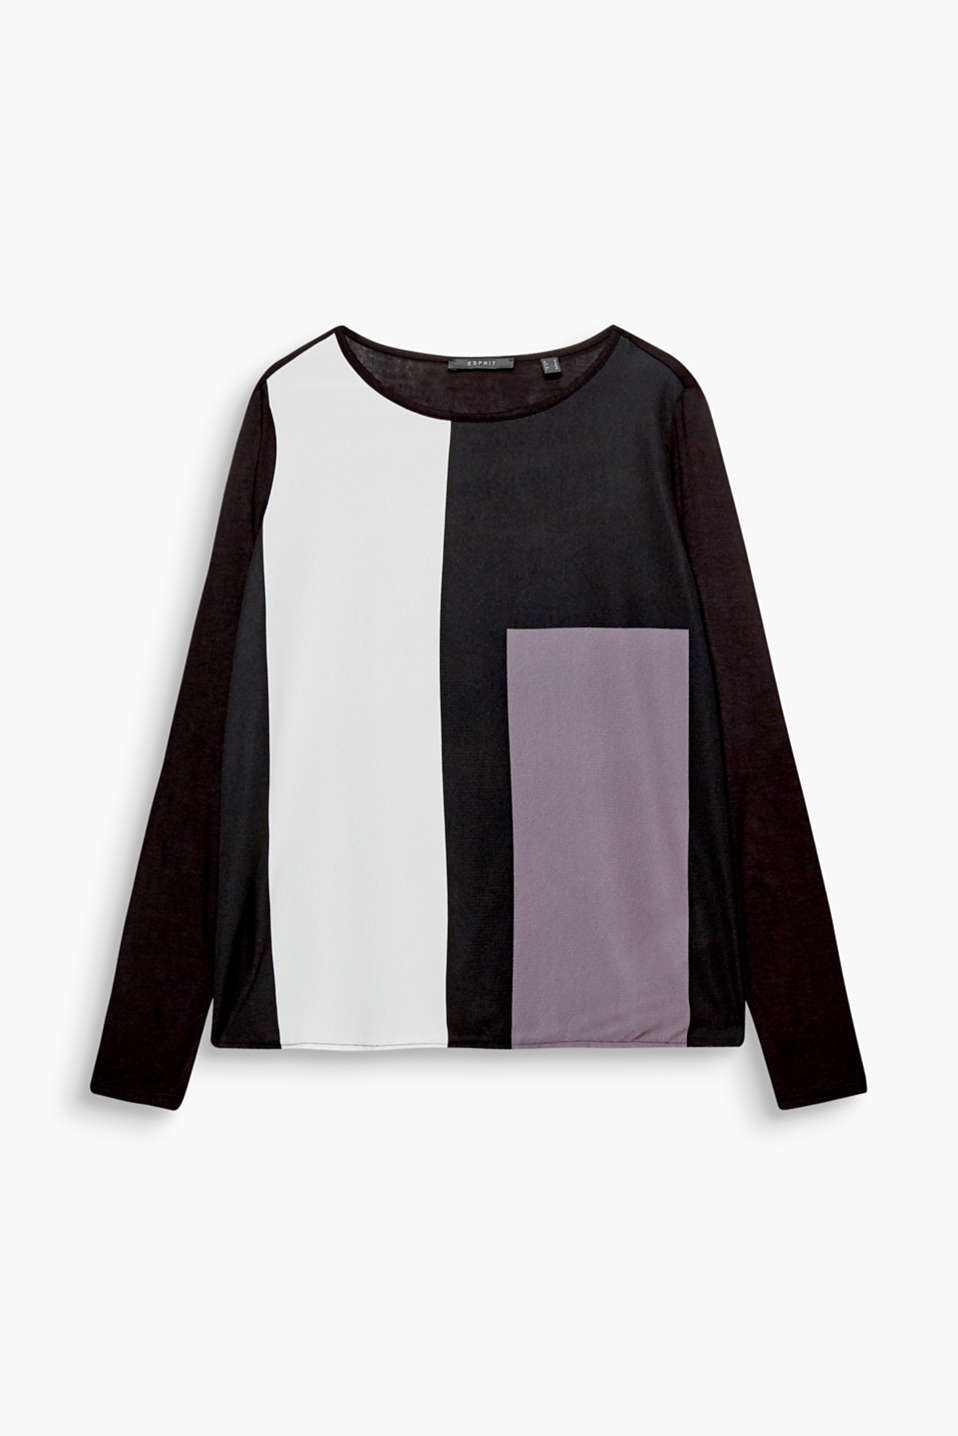 Modern style: This long sleeve top in a material mix catches the eye thanks to the graphic colour blocking on the front!